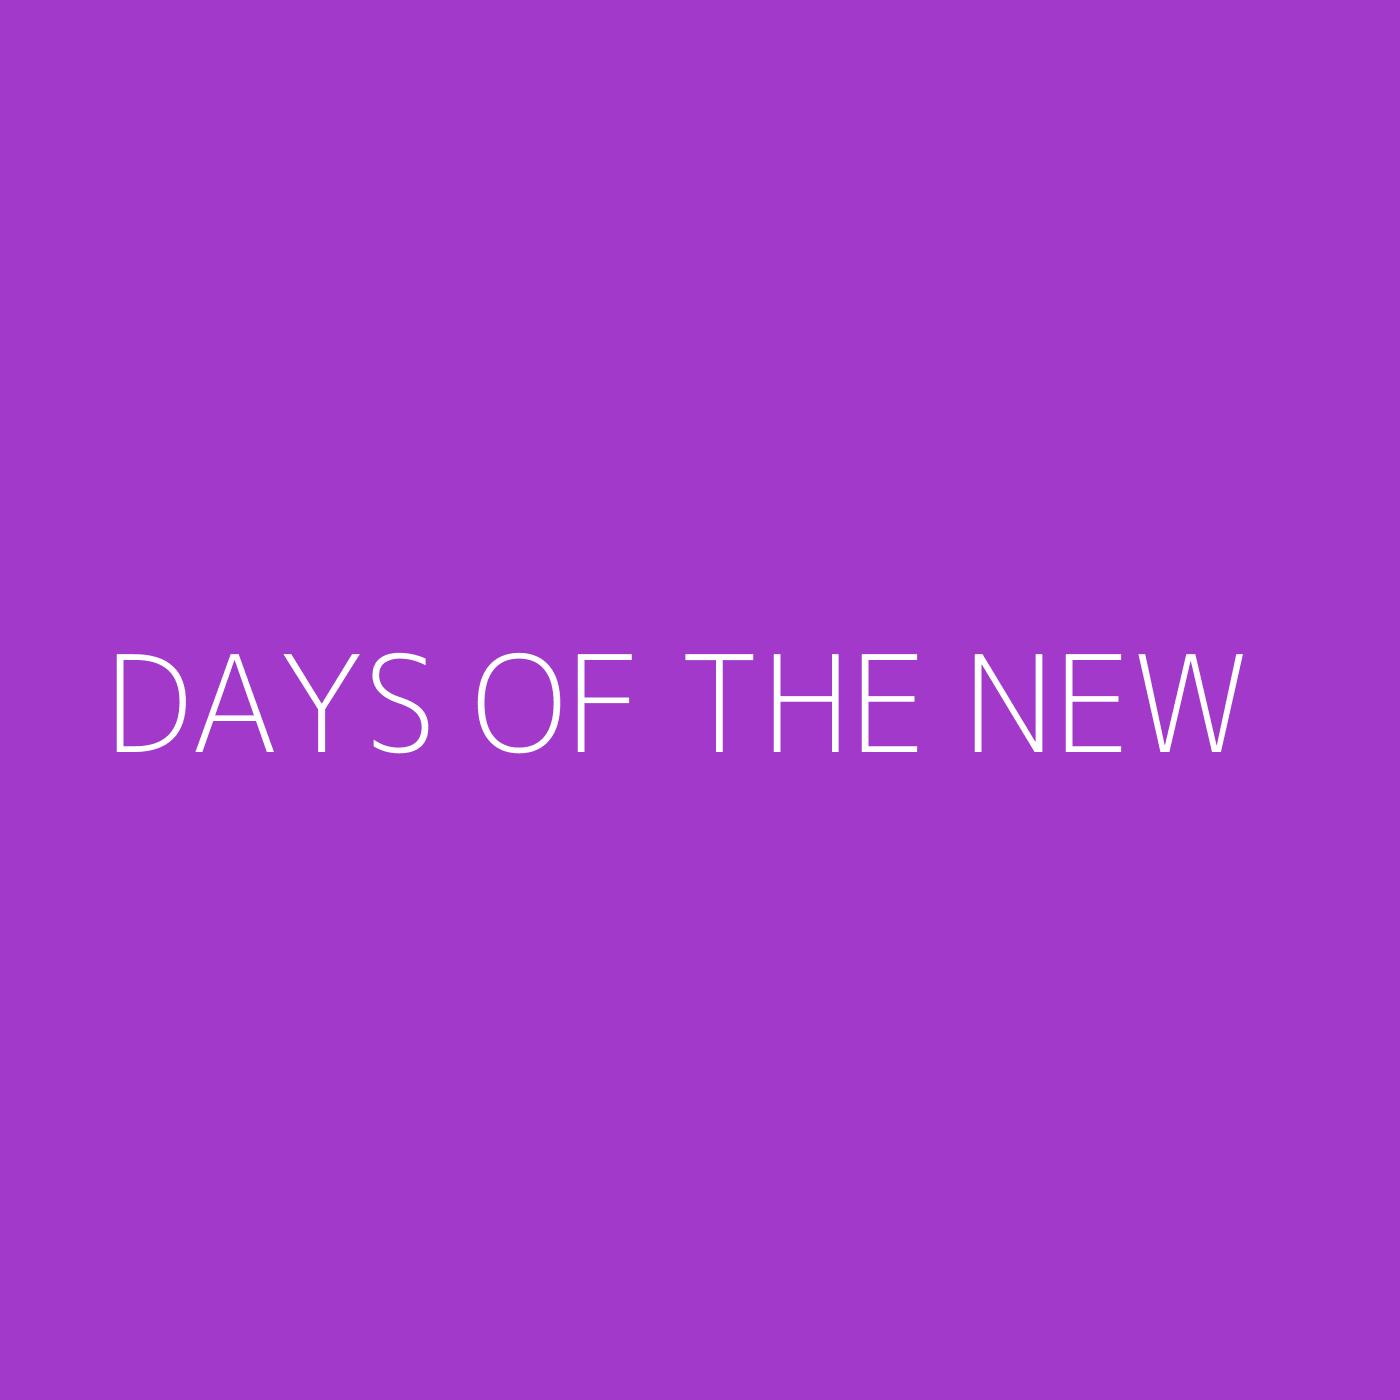 Days Of The New Playlist Artwork